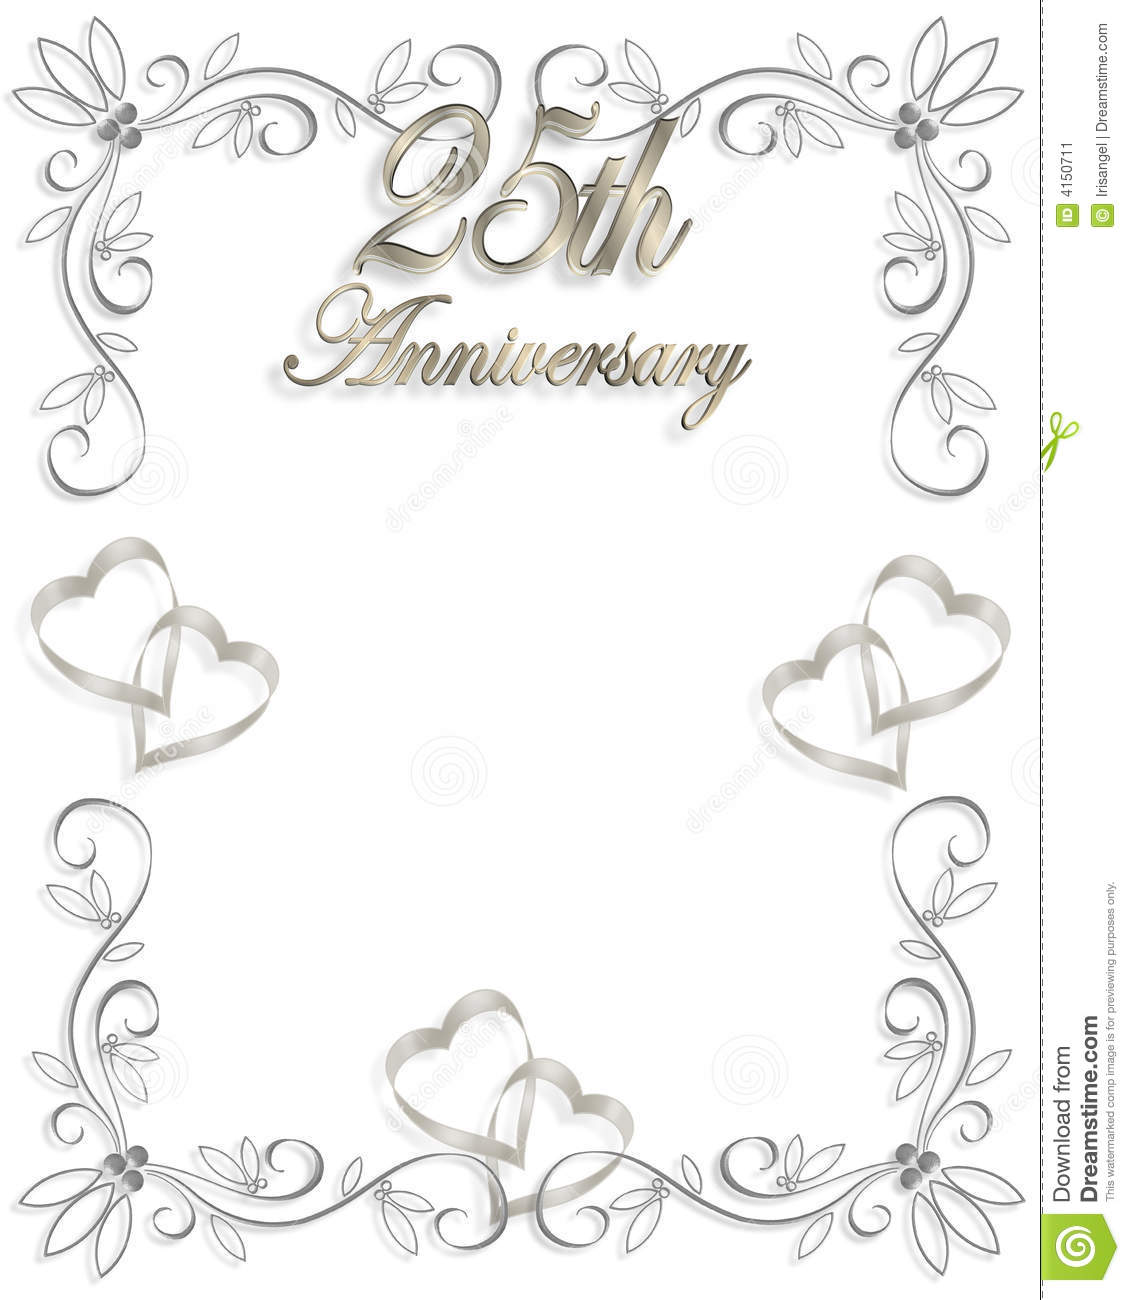 25th wedding anniversary invitation stock image - image: 4150711, Wedding invitations